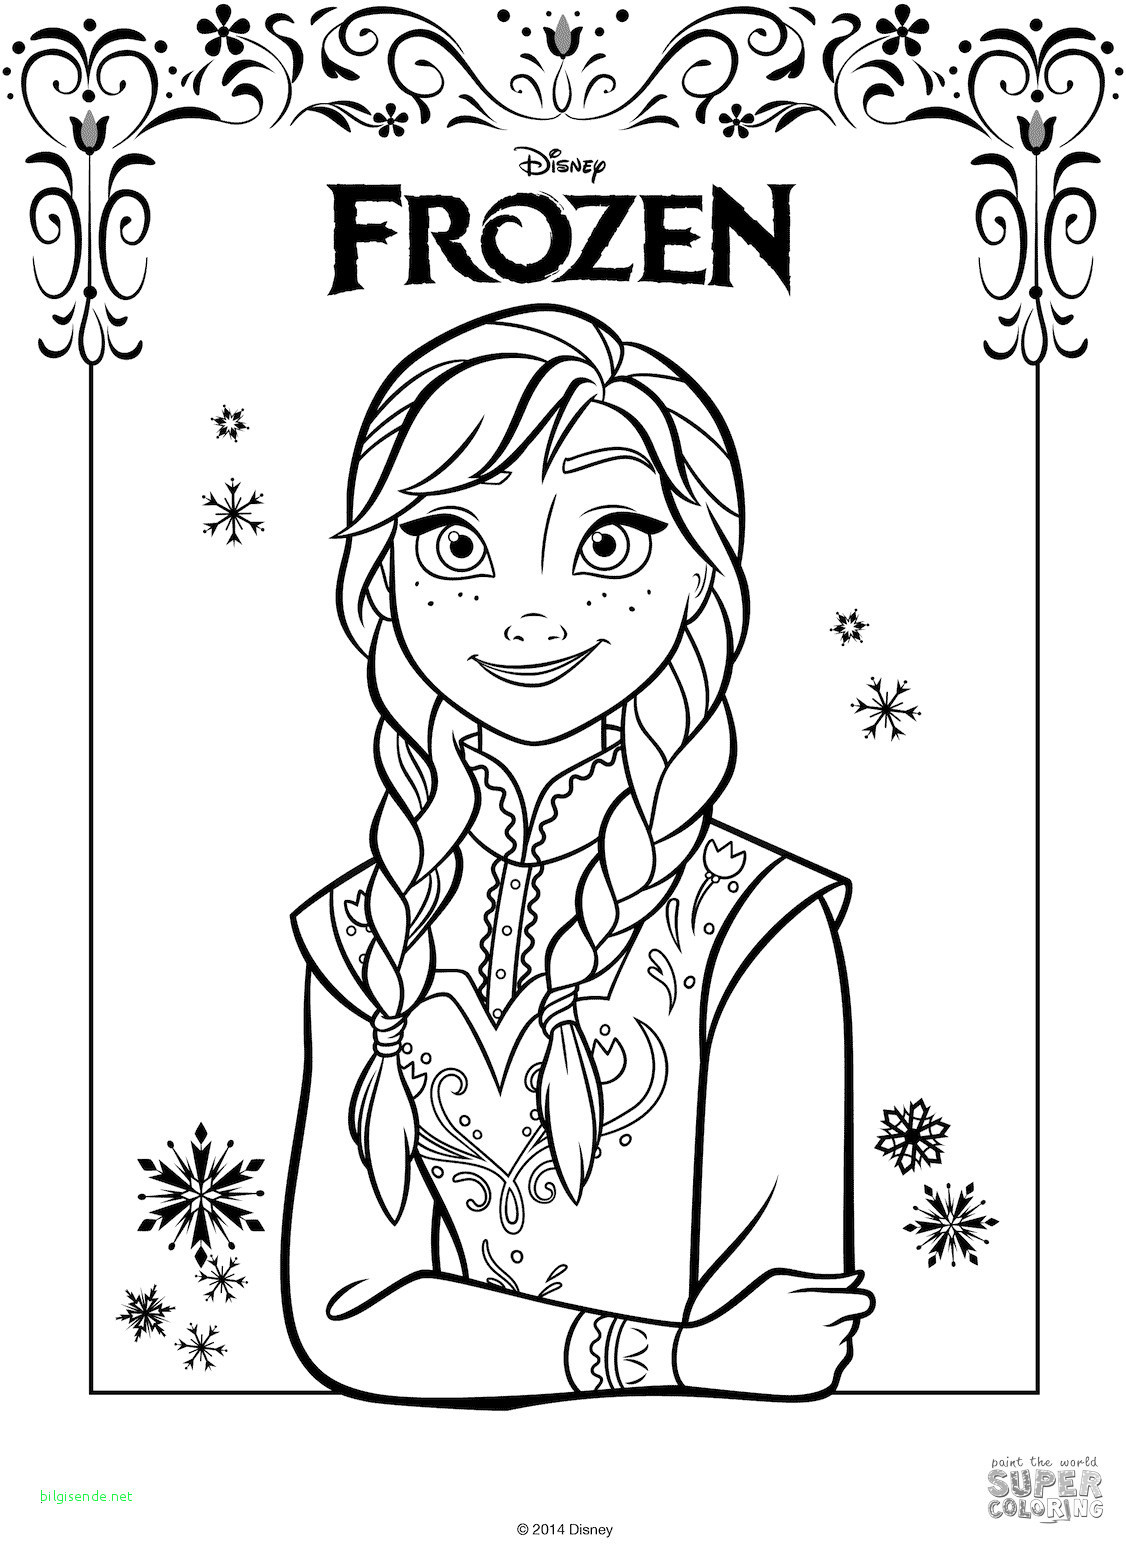 Ausmalbilder Disney Prinzessinnen Genial Best Coloring Disney Princess Elsa and Anna Neu Ausmalbilder Anna Fotos